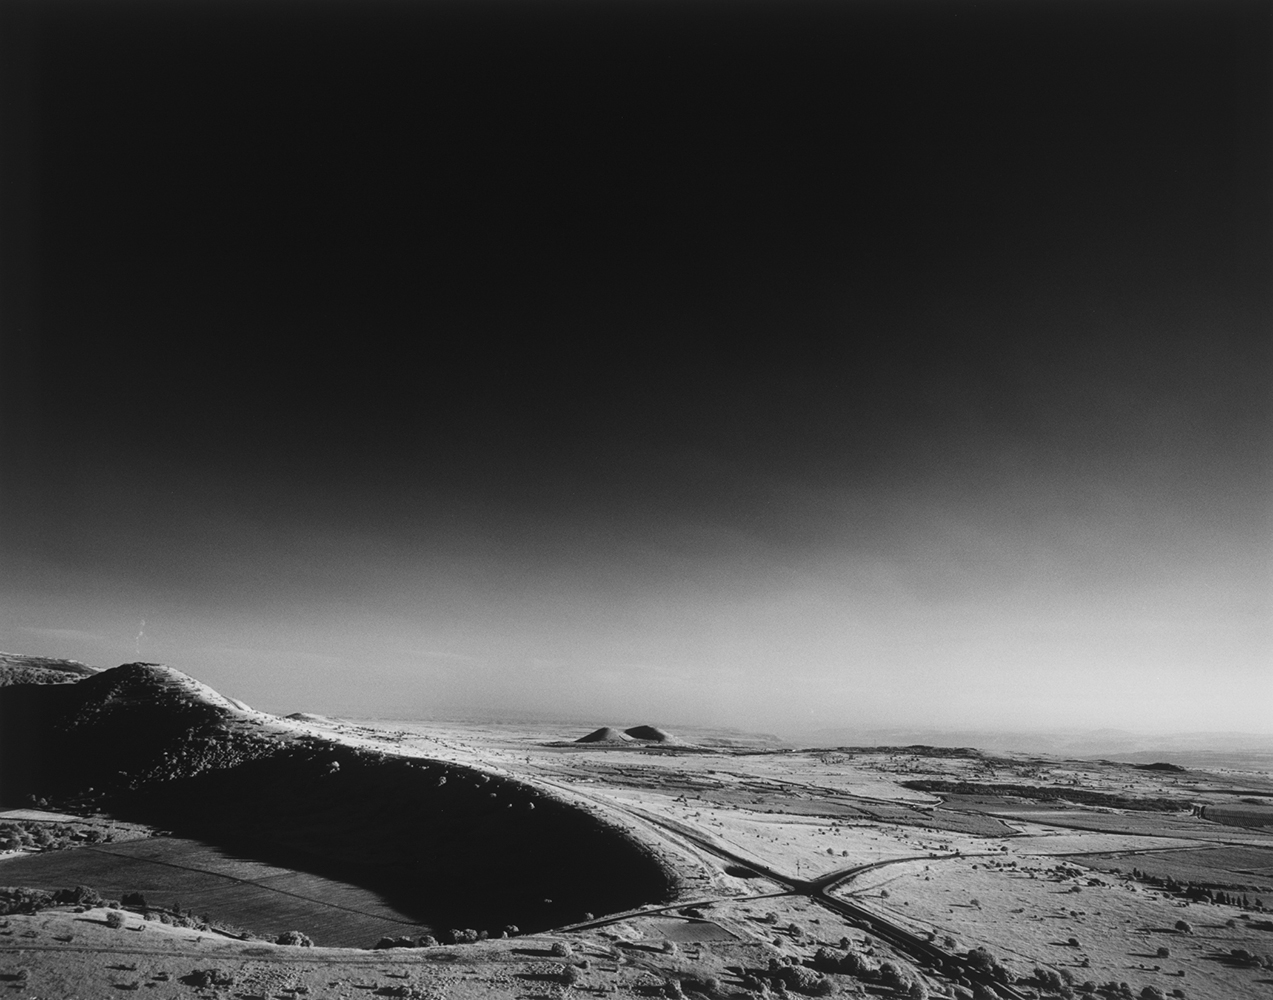 Israel_03_05 , 2003-15, Black and white infared (from medium format film) archival pigment print, 27 x 31 inches